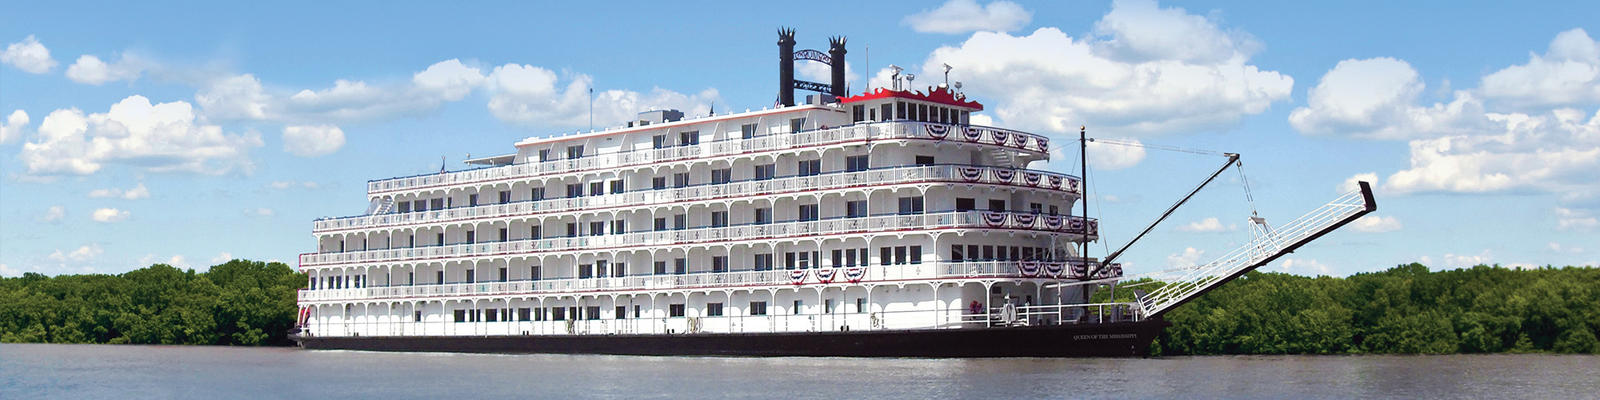 Best American Cruise Lines Cruises Reviews And Photos - Us registered cruise ships